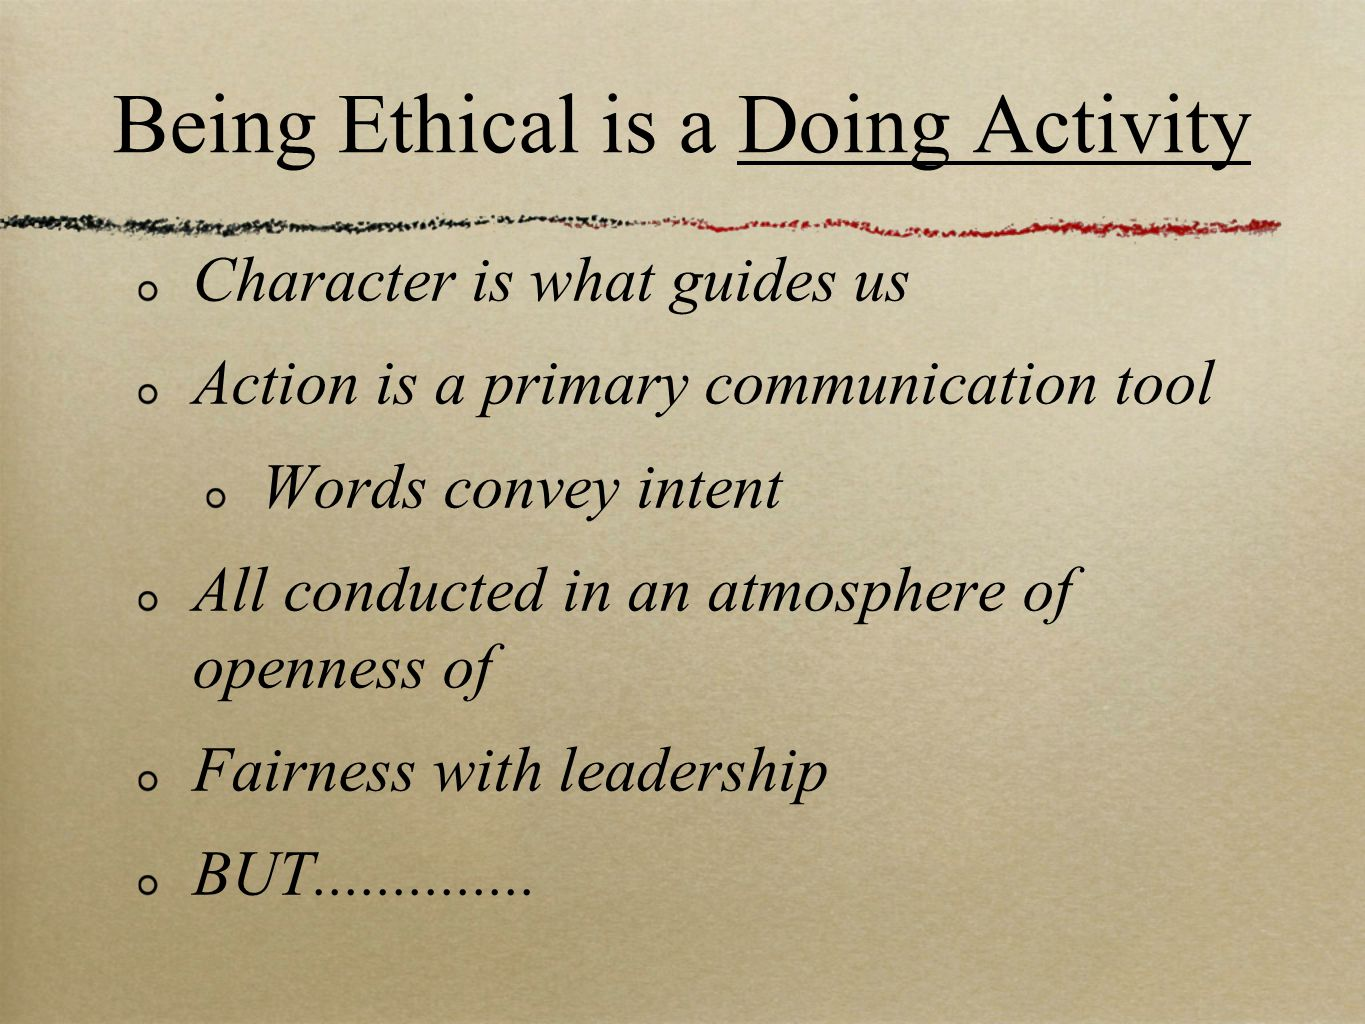 Being Ethical is a Doing Activity Character is what guides us Action is a primary communication tool Words convey intent All conducted in an atmosphere of openness of Fairness with leadership BUT..............